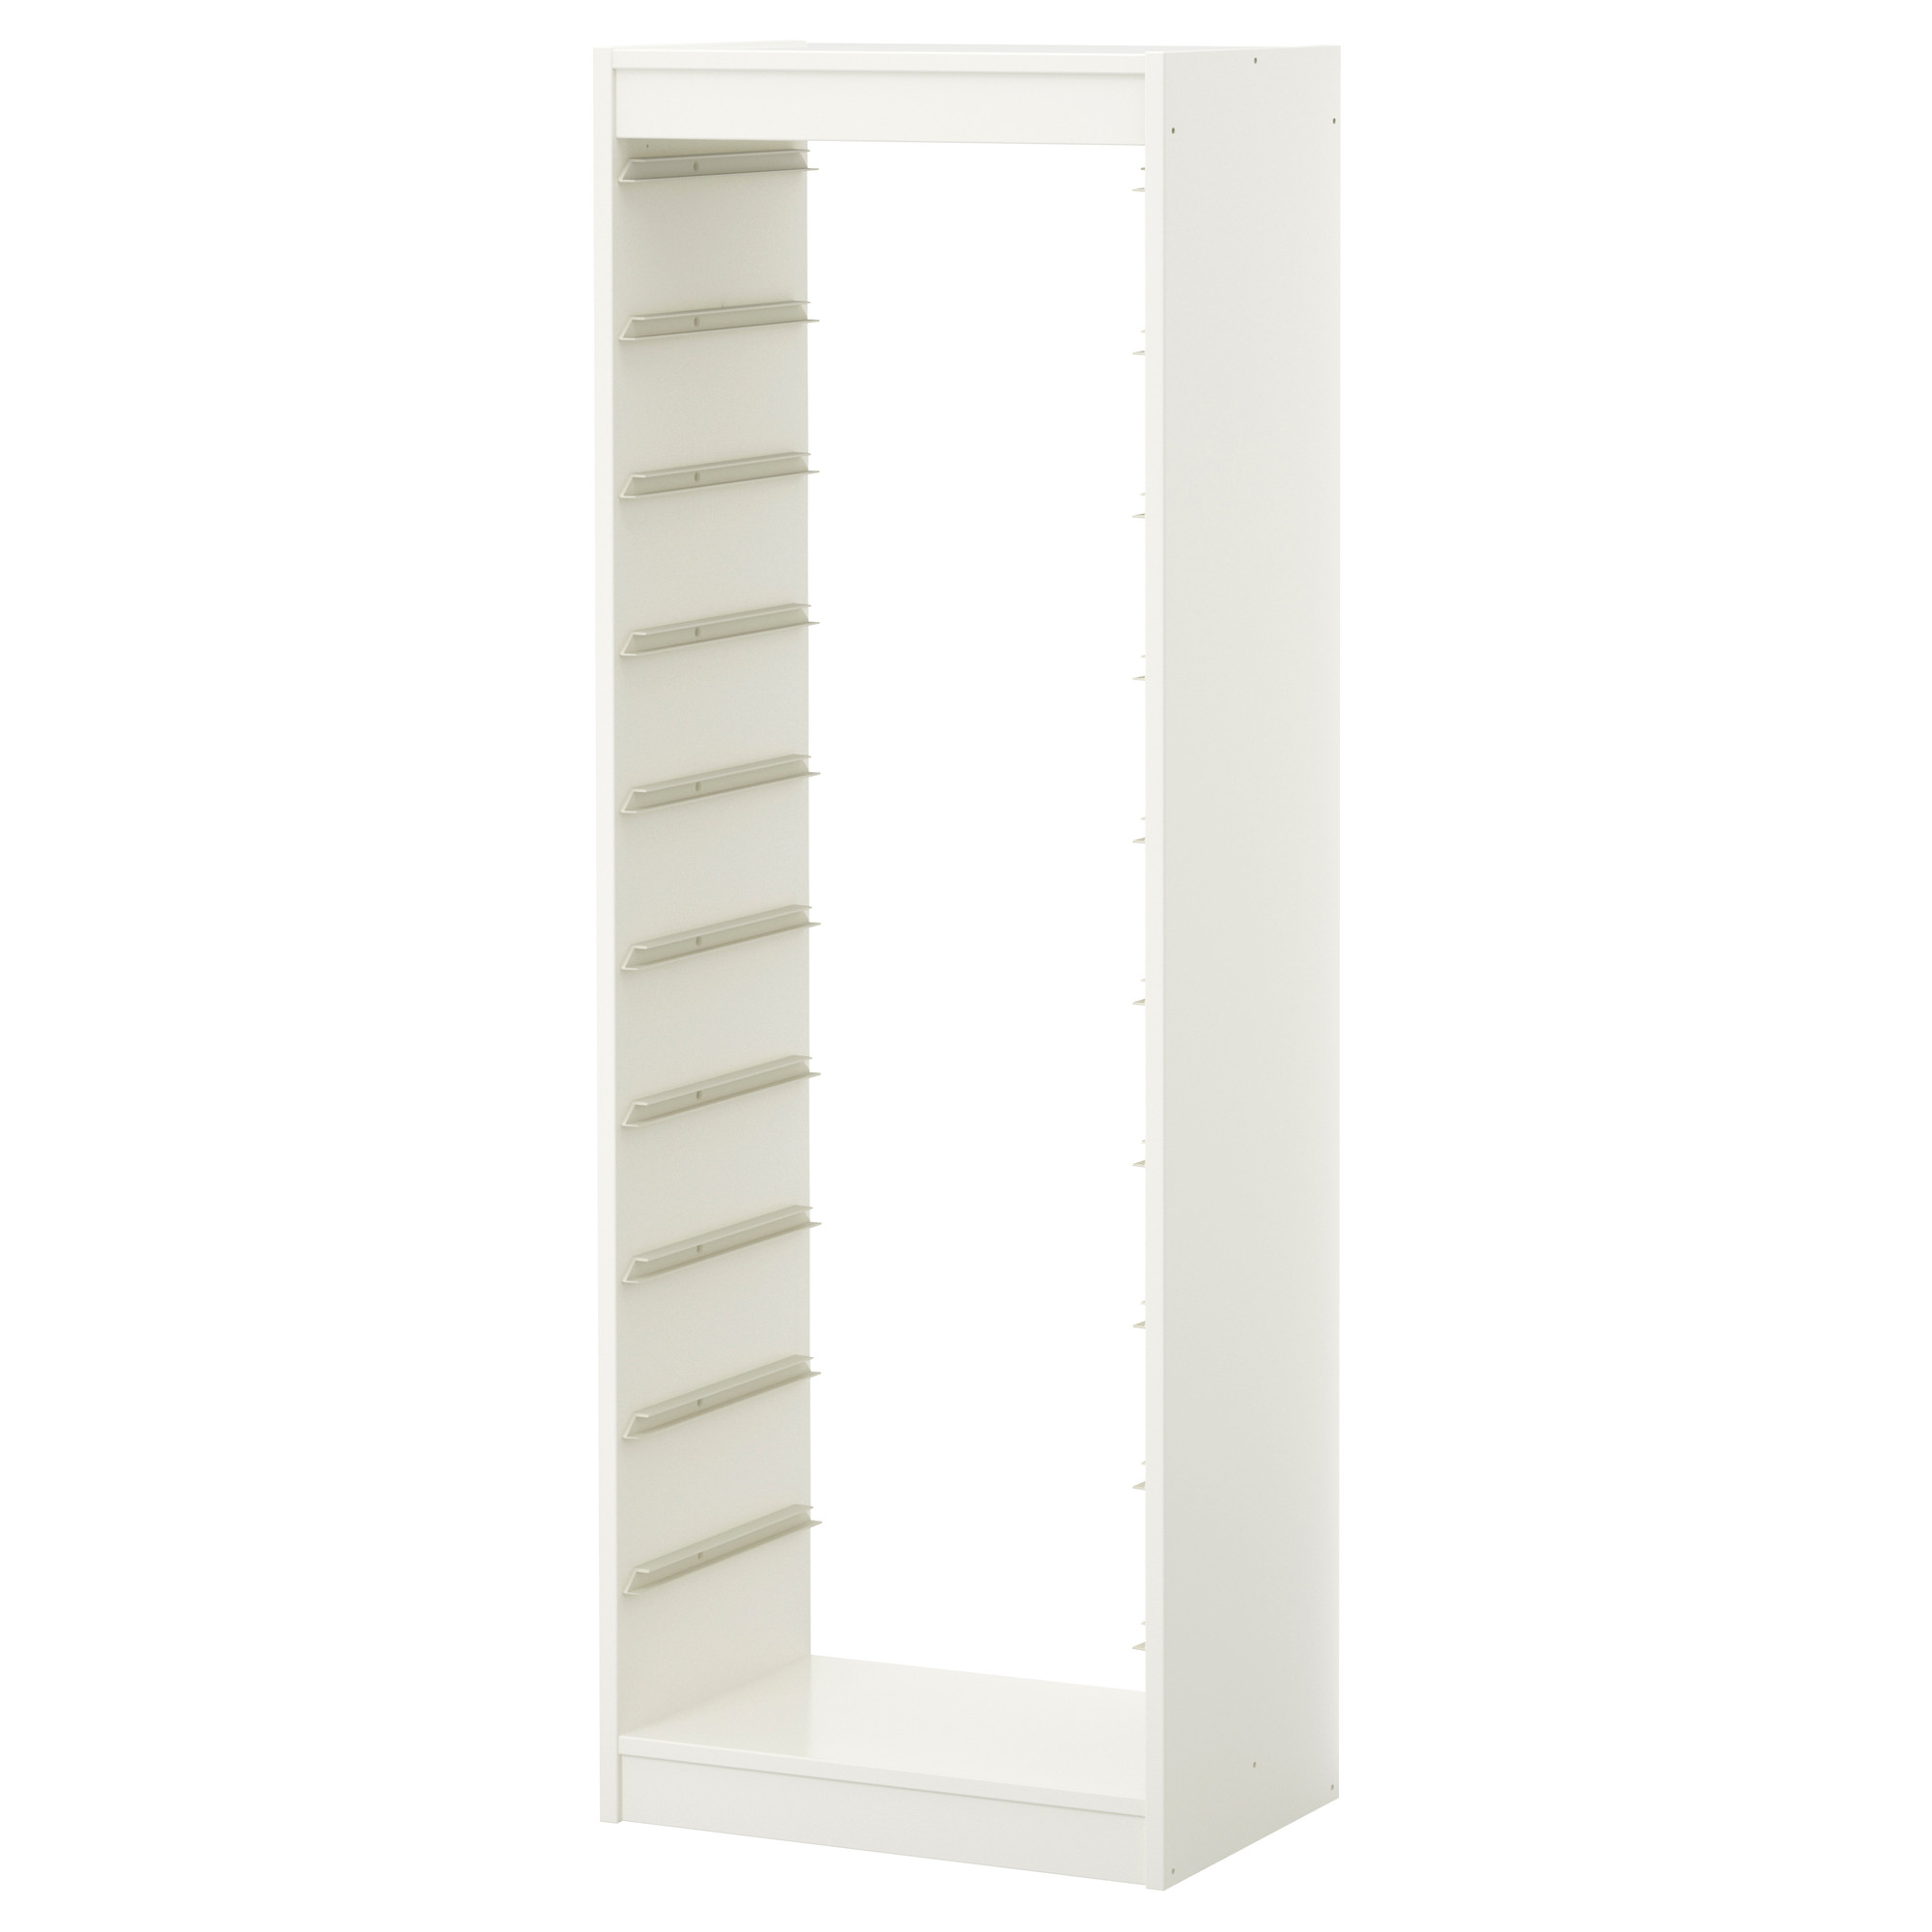 tall ikea Toy Storage in white for furniture ideas